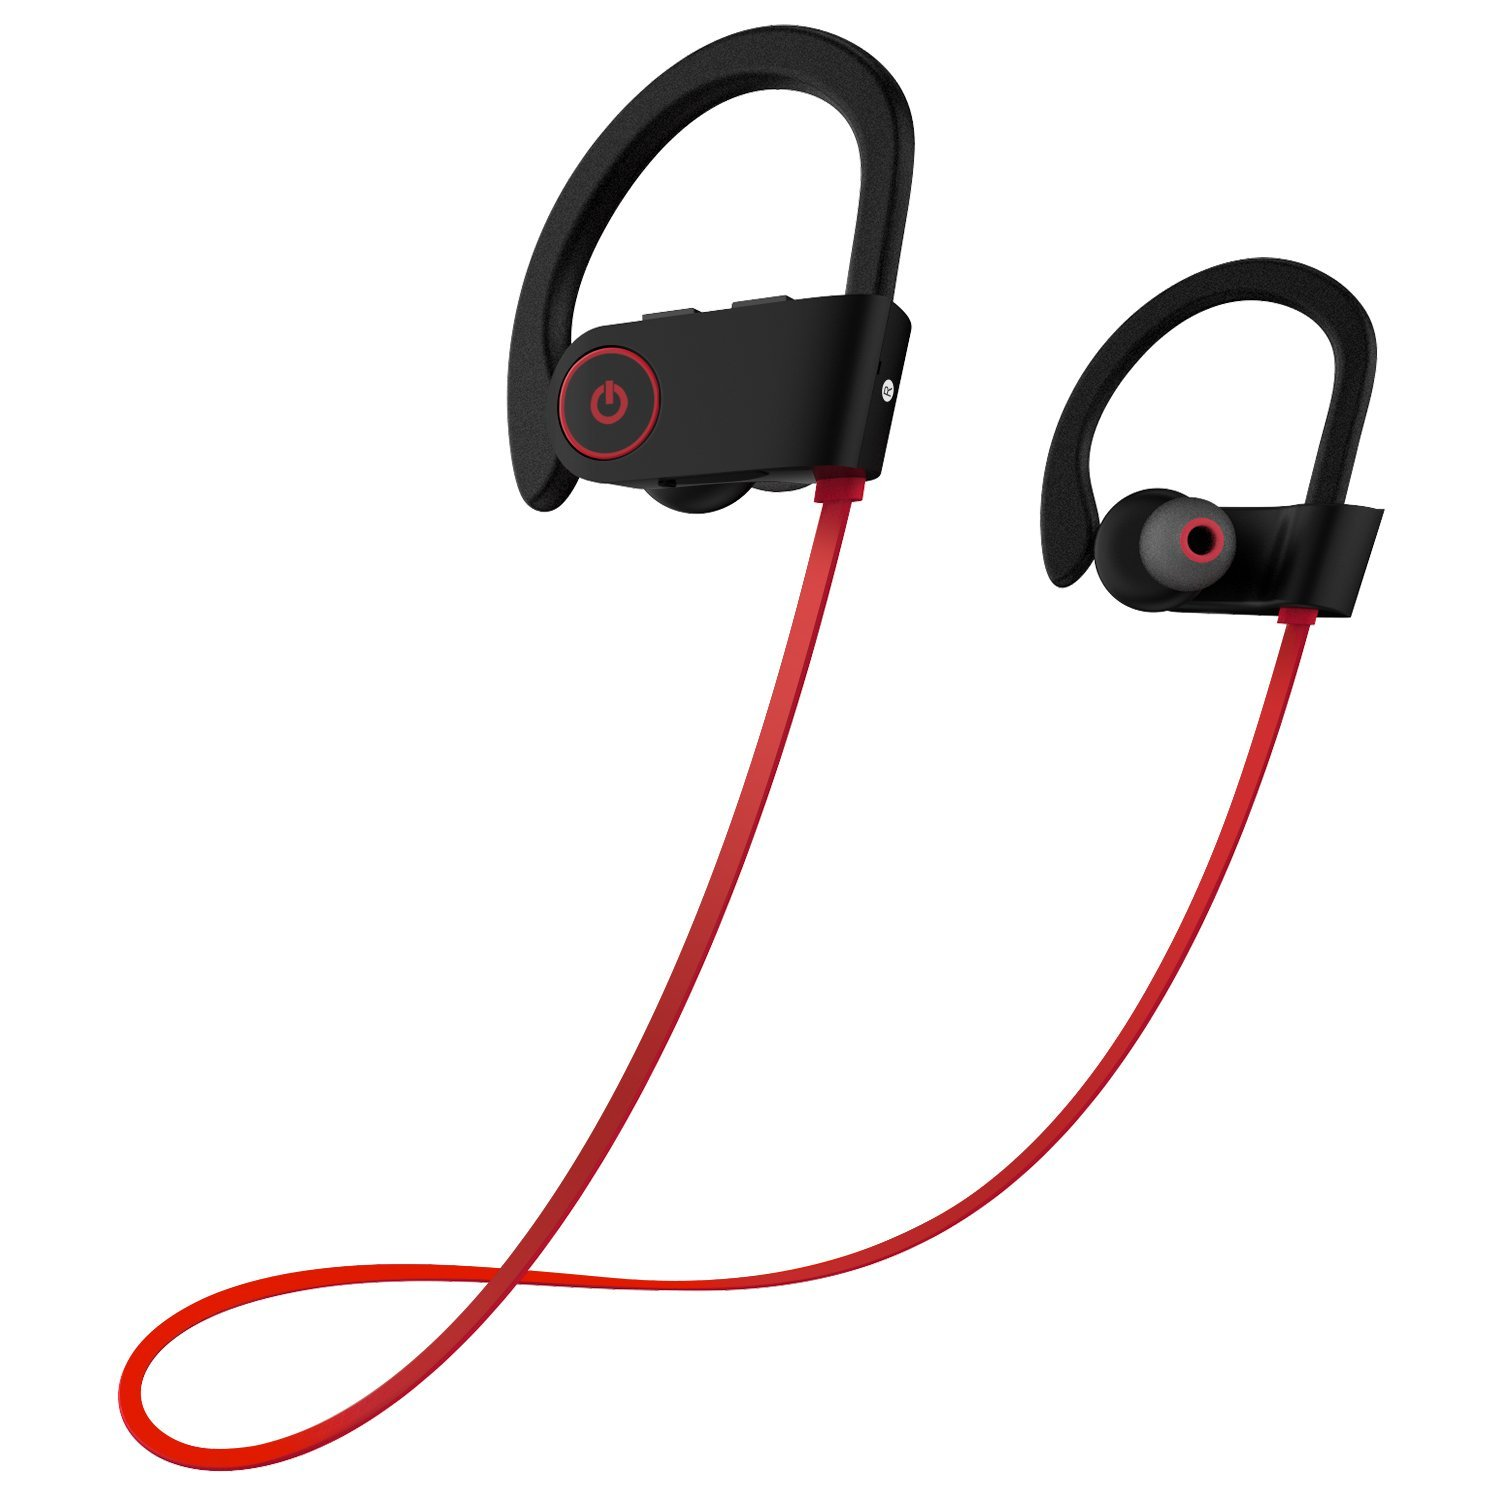 Otium Bluetooth Headphones Best Wireless Sports Earphones w/ Mic IPX7 Waterproof HD Stereo Sweatproof In Ear Earbuds for Gym Running Workout 8 Hour Battery Noise Cancelling Headsets